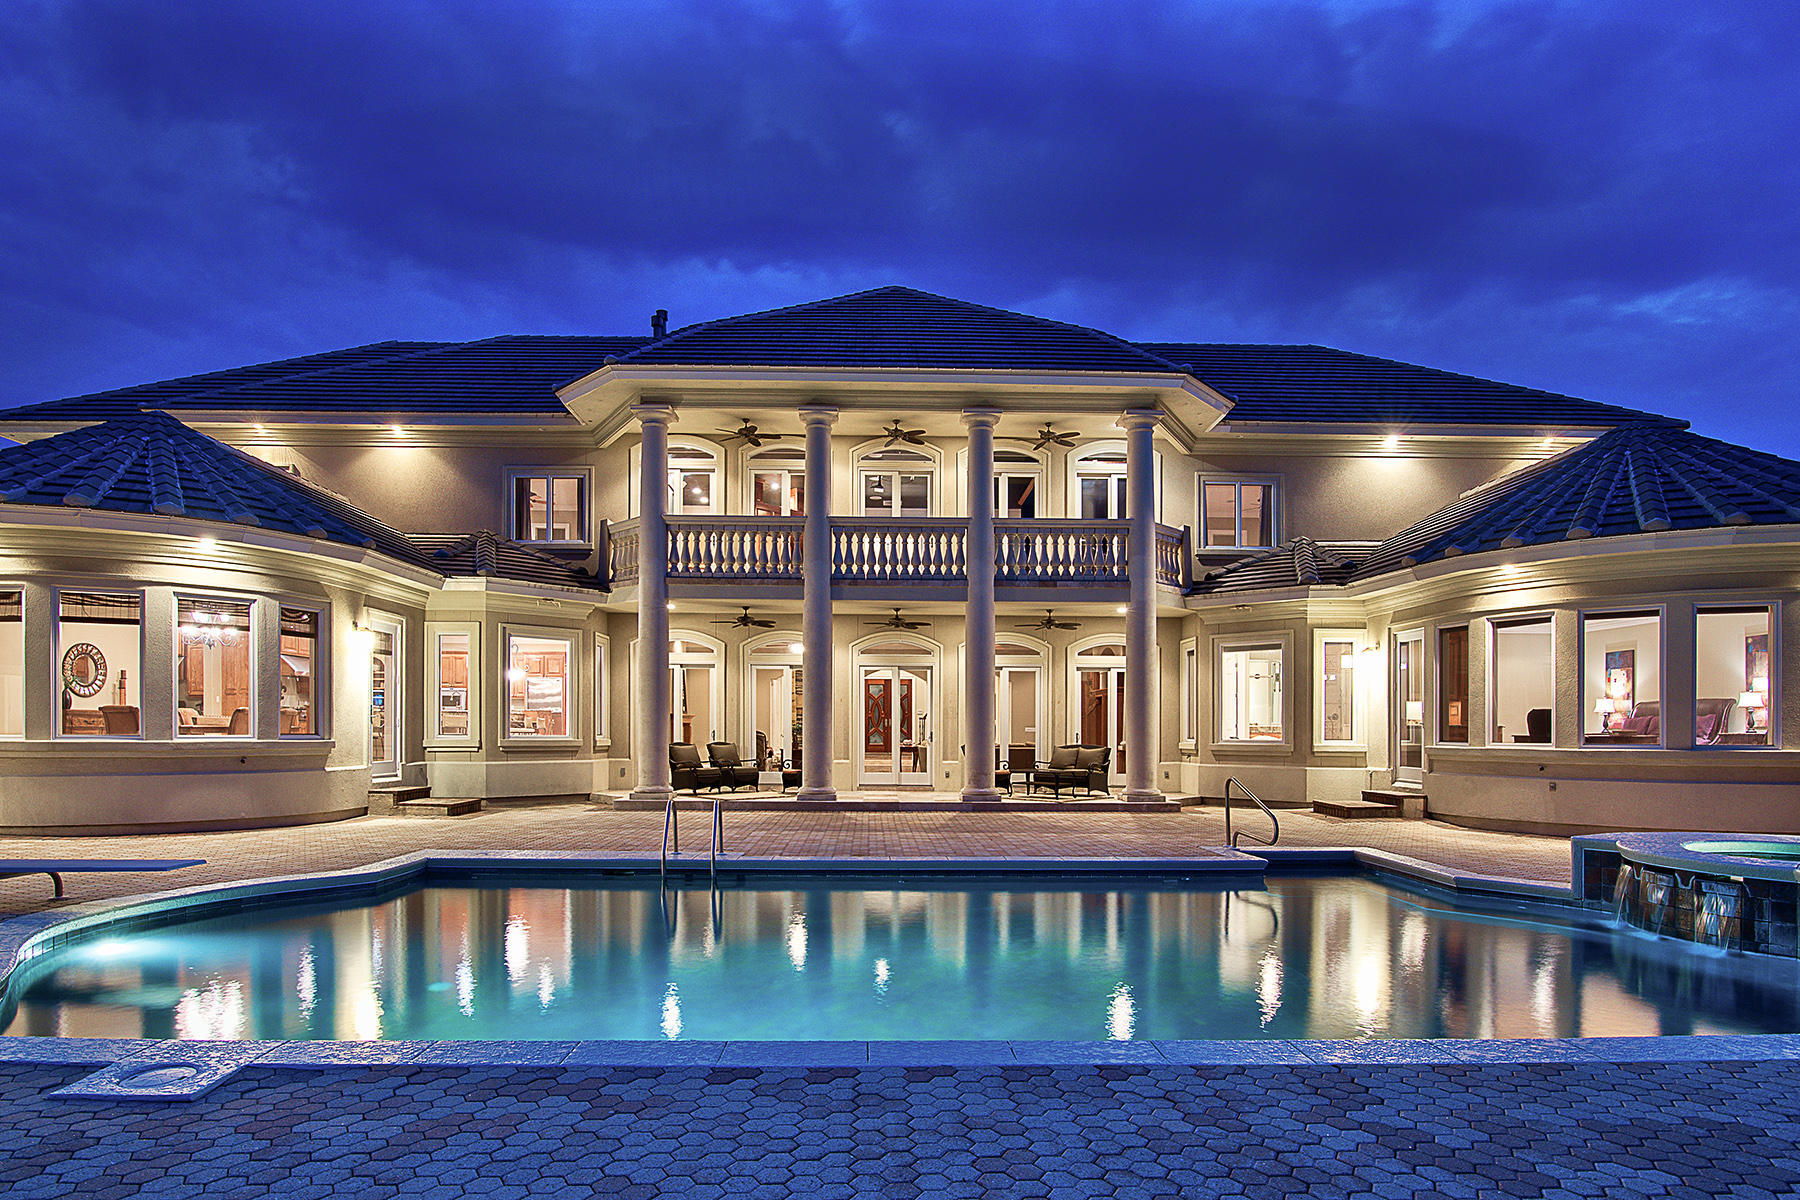 Single Family Home for Sale at MAGNIFICENT WATERFRONT ESTATE 3807 Indian Trl Destin, Florida 32541 United States